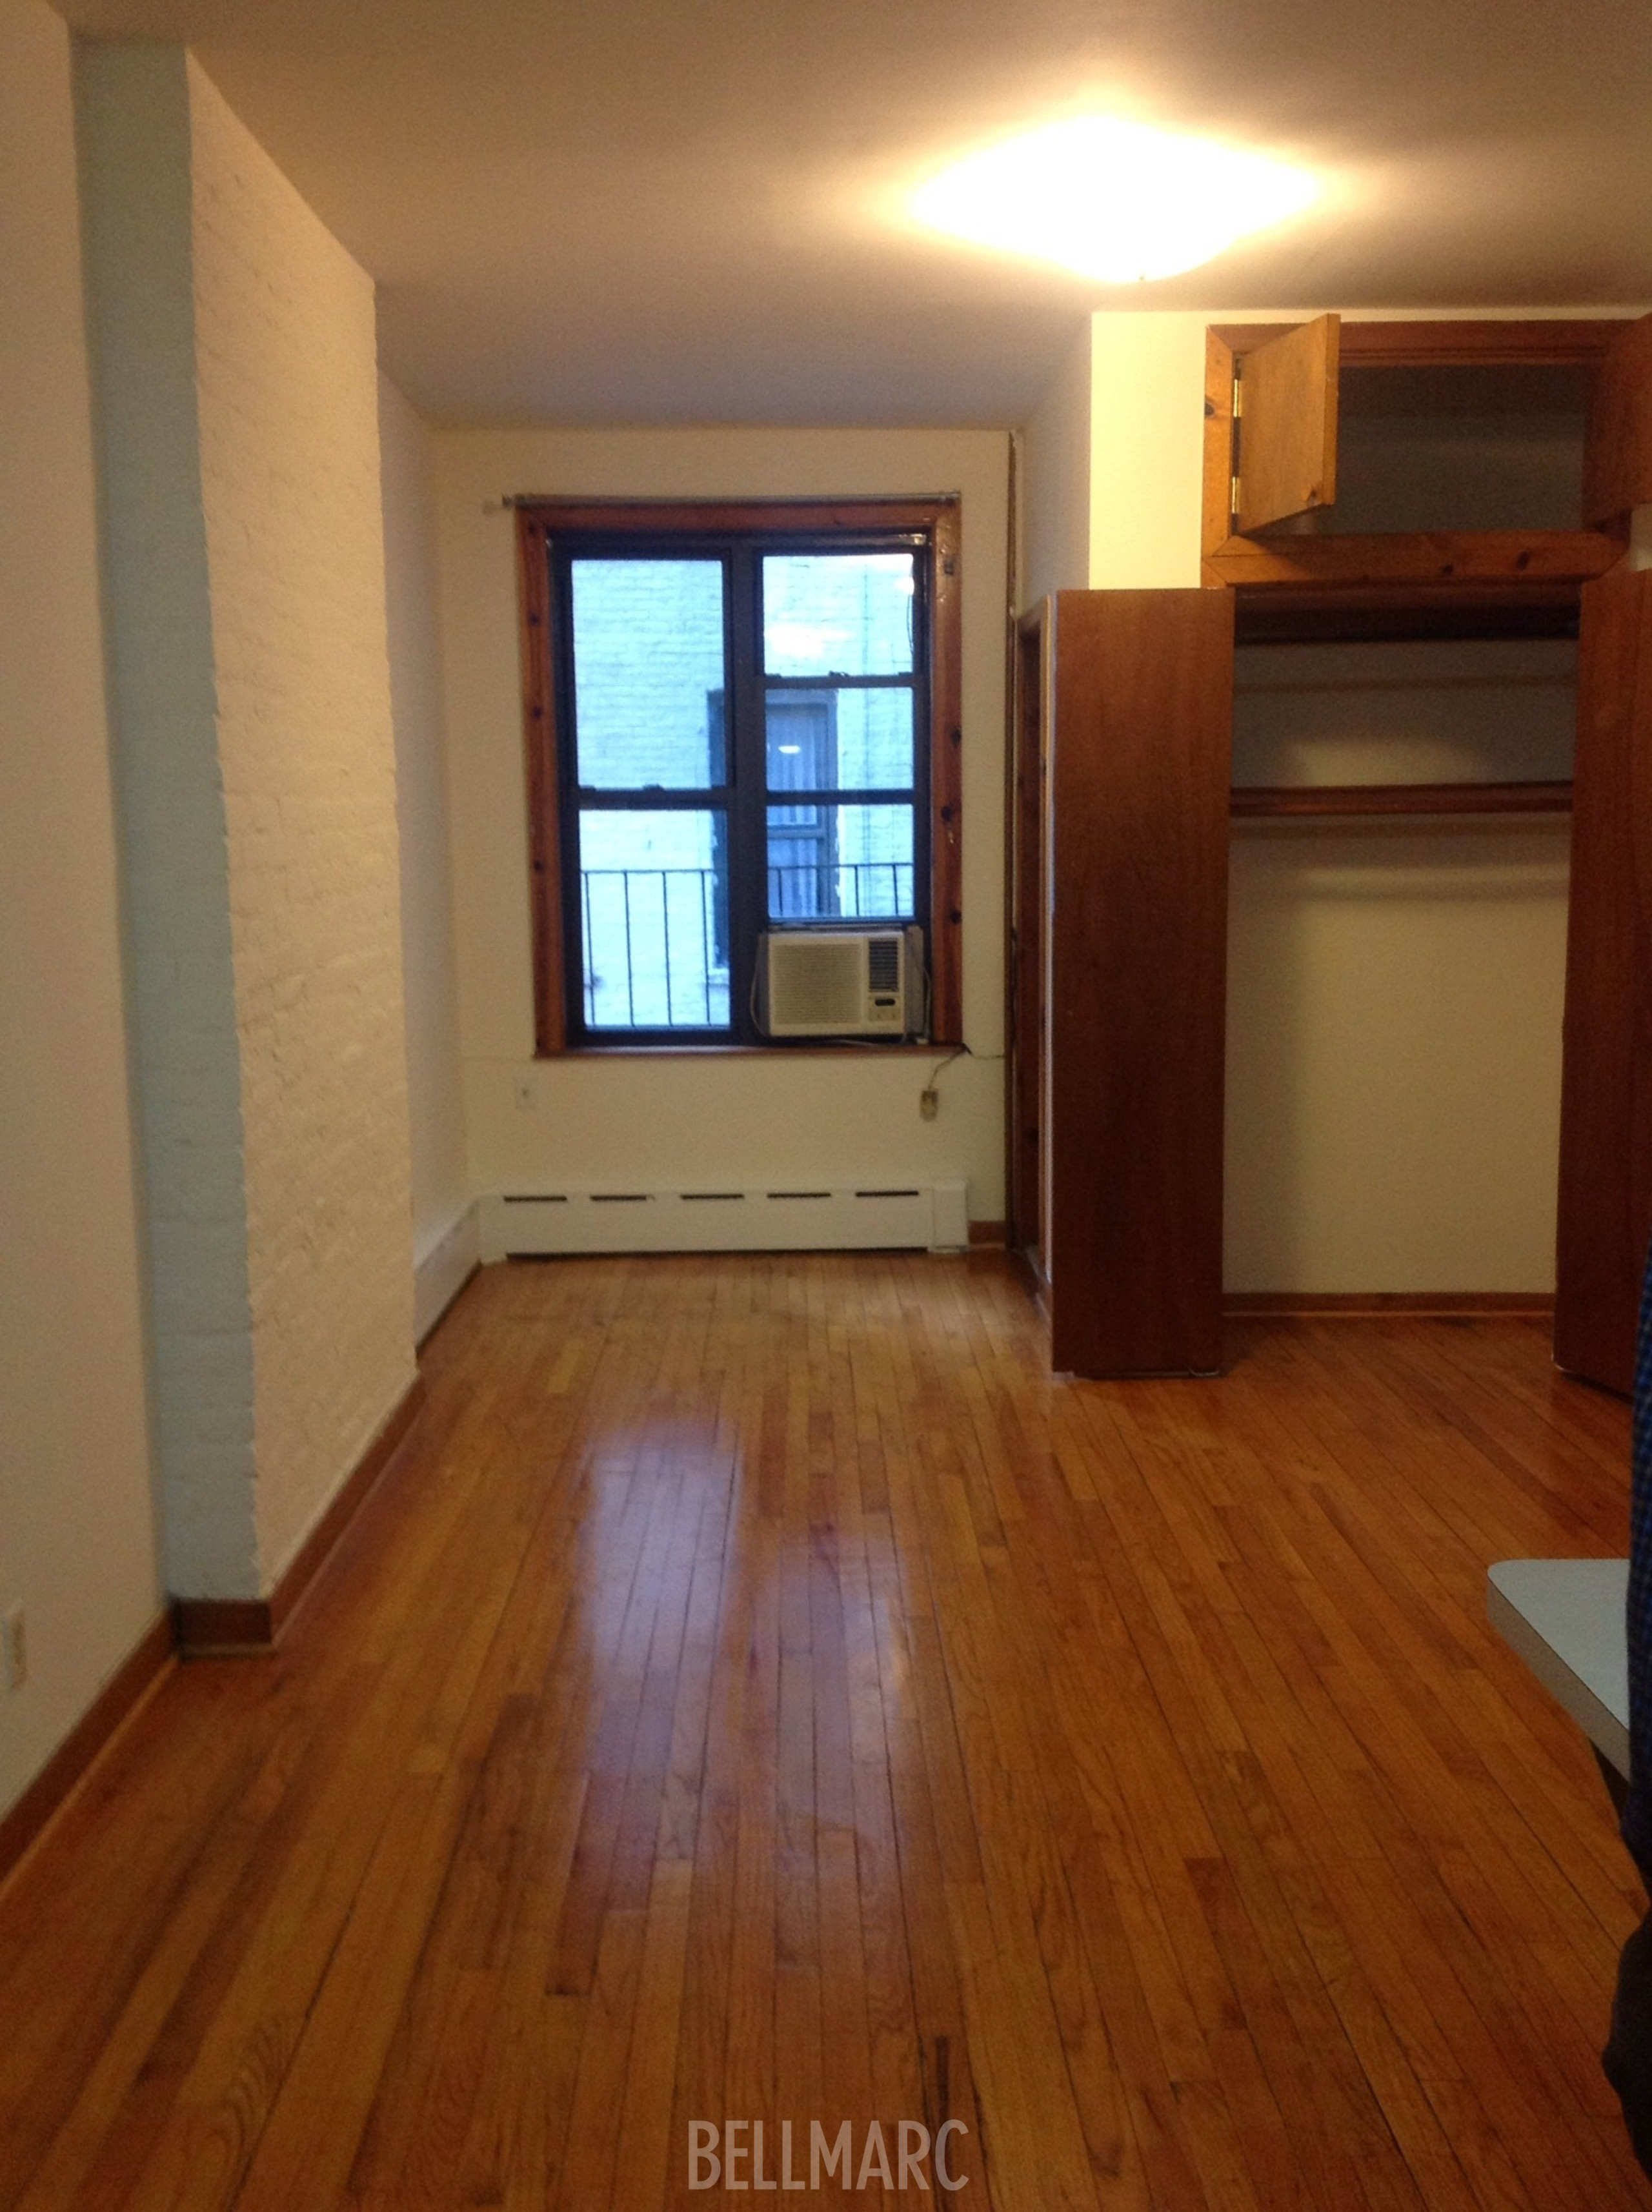 Madison Ave E 104th St New York NY 10029 Studio Apartment For Rent Fo